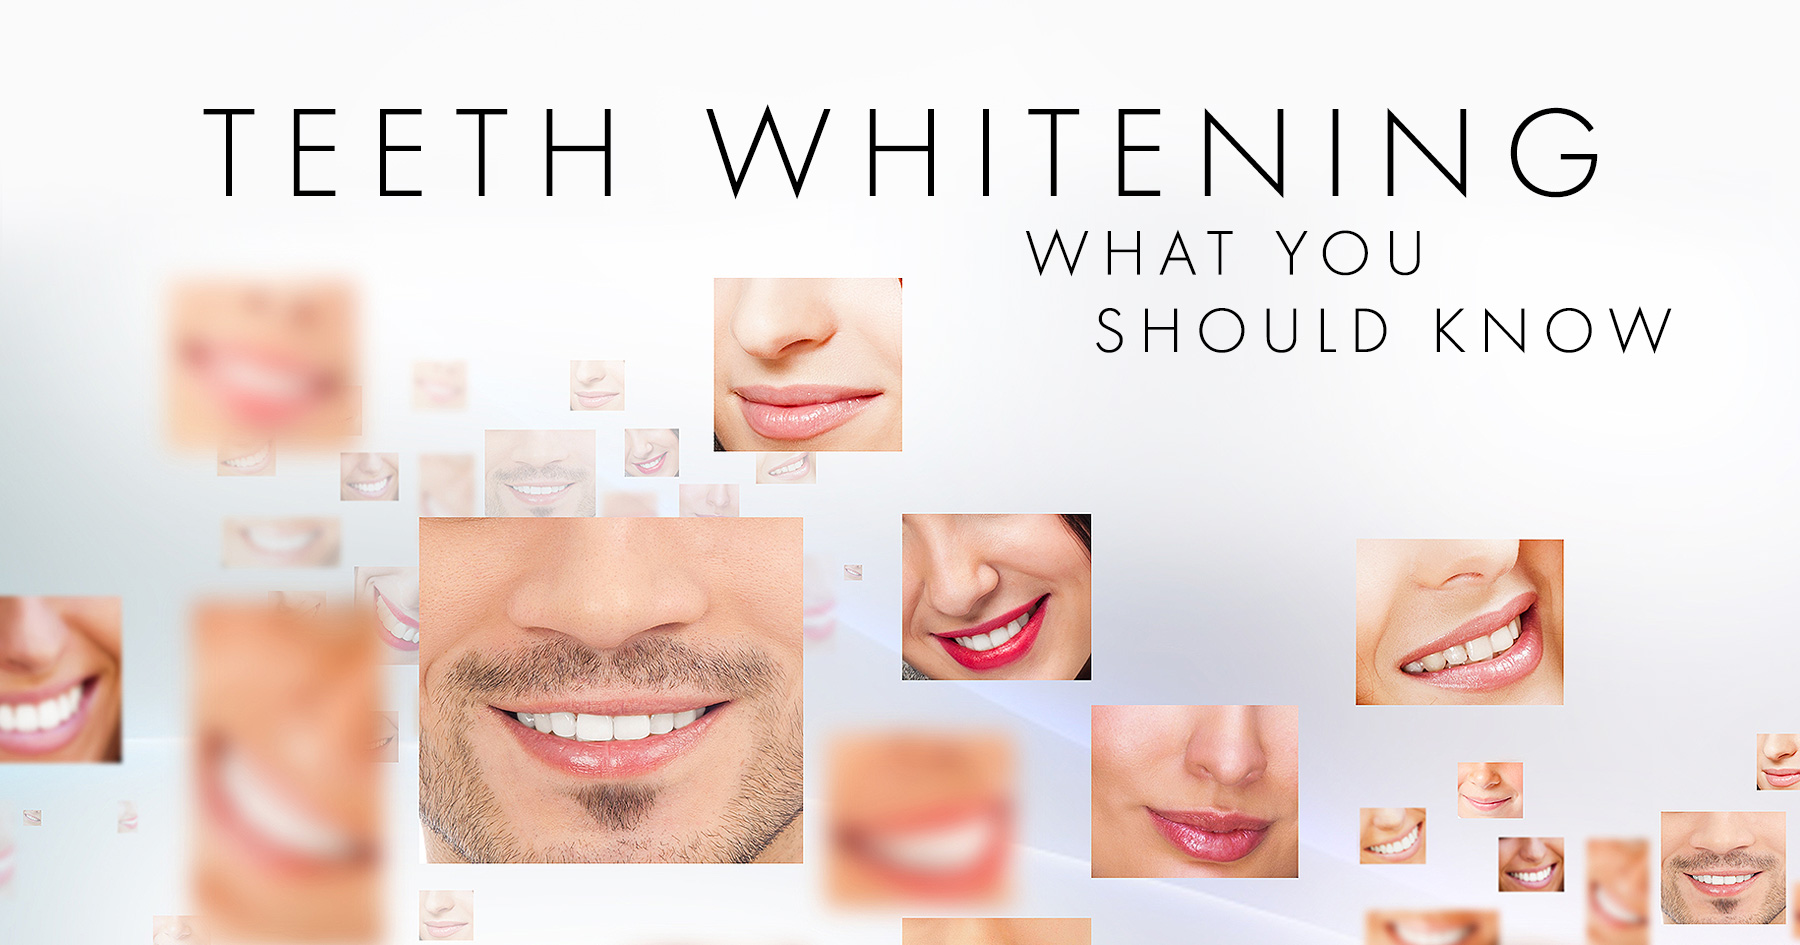 Whitening Wisdom: What You Should Know